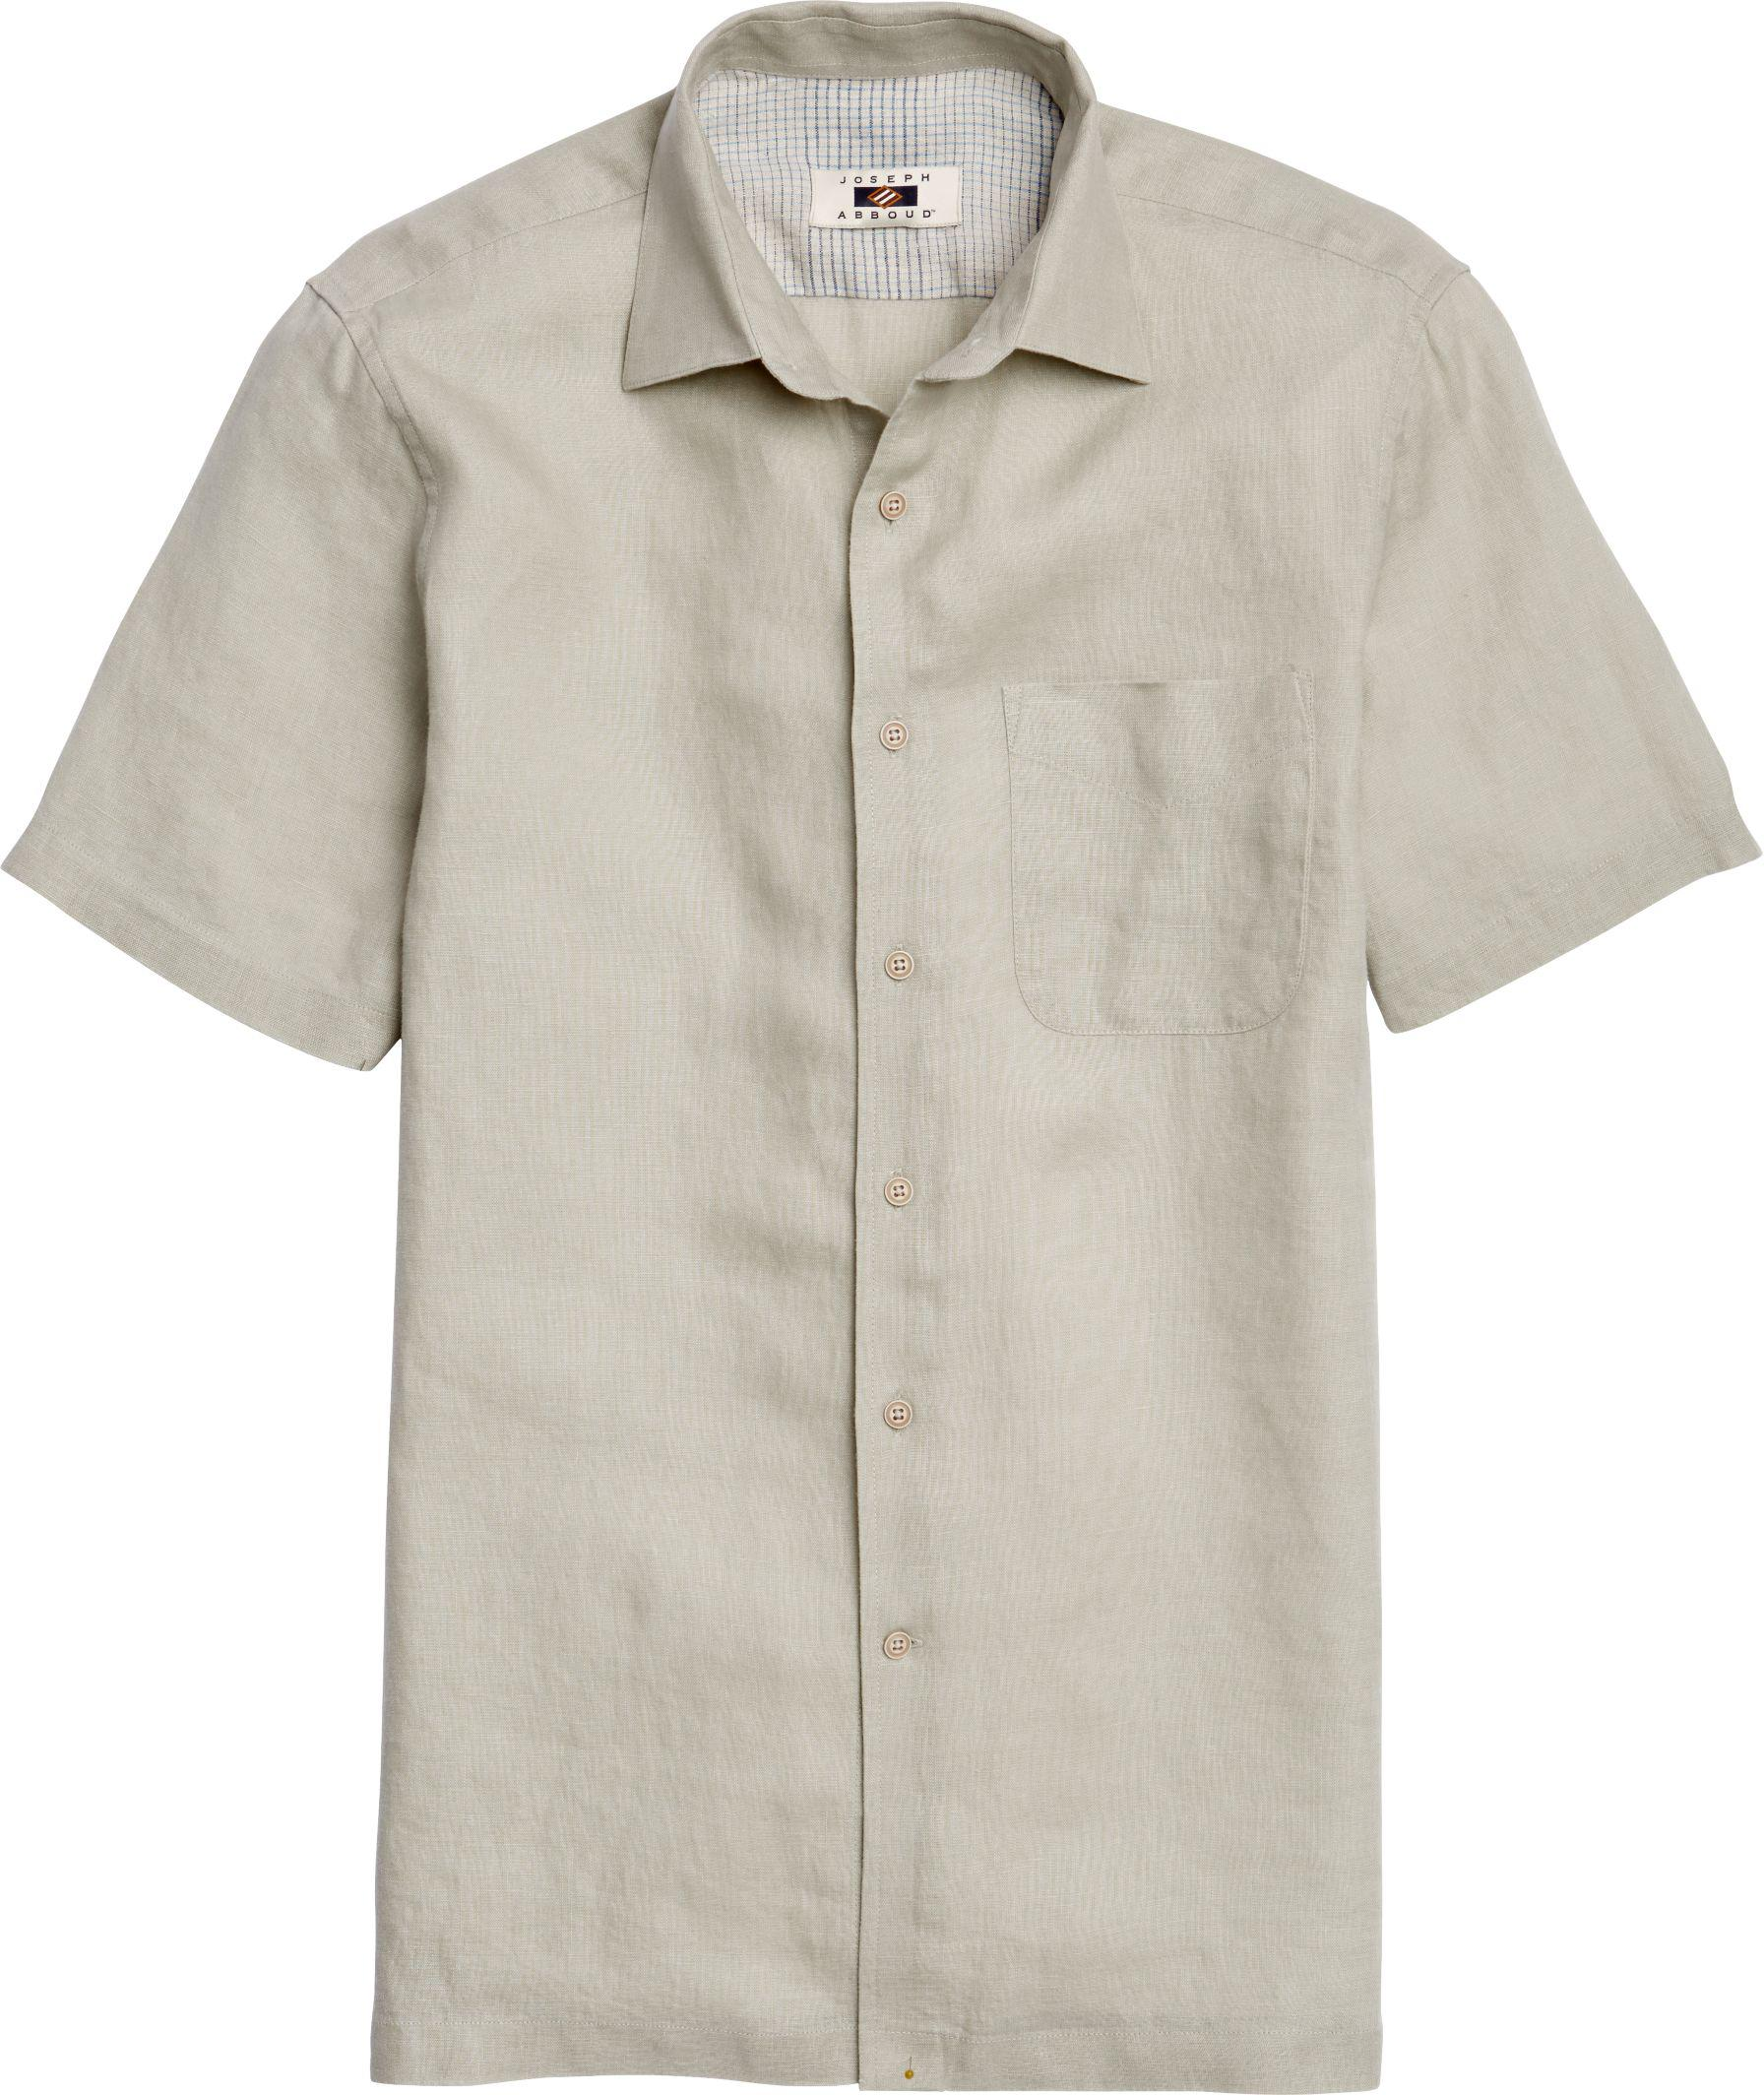 Jos a bank joseph abboud tailored fit short sleeved for Joseph banks dress shirts